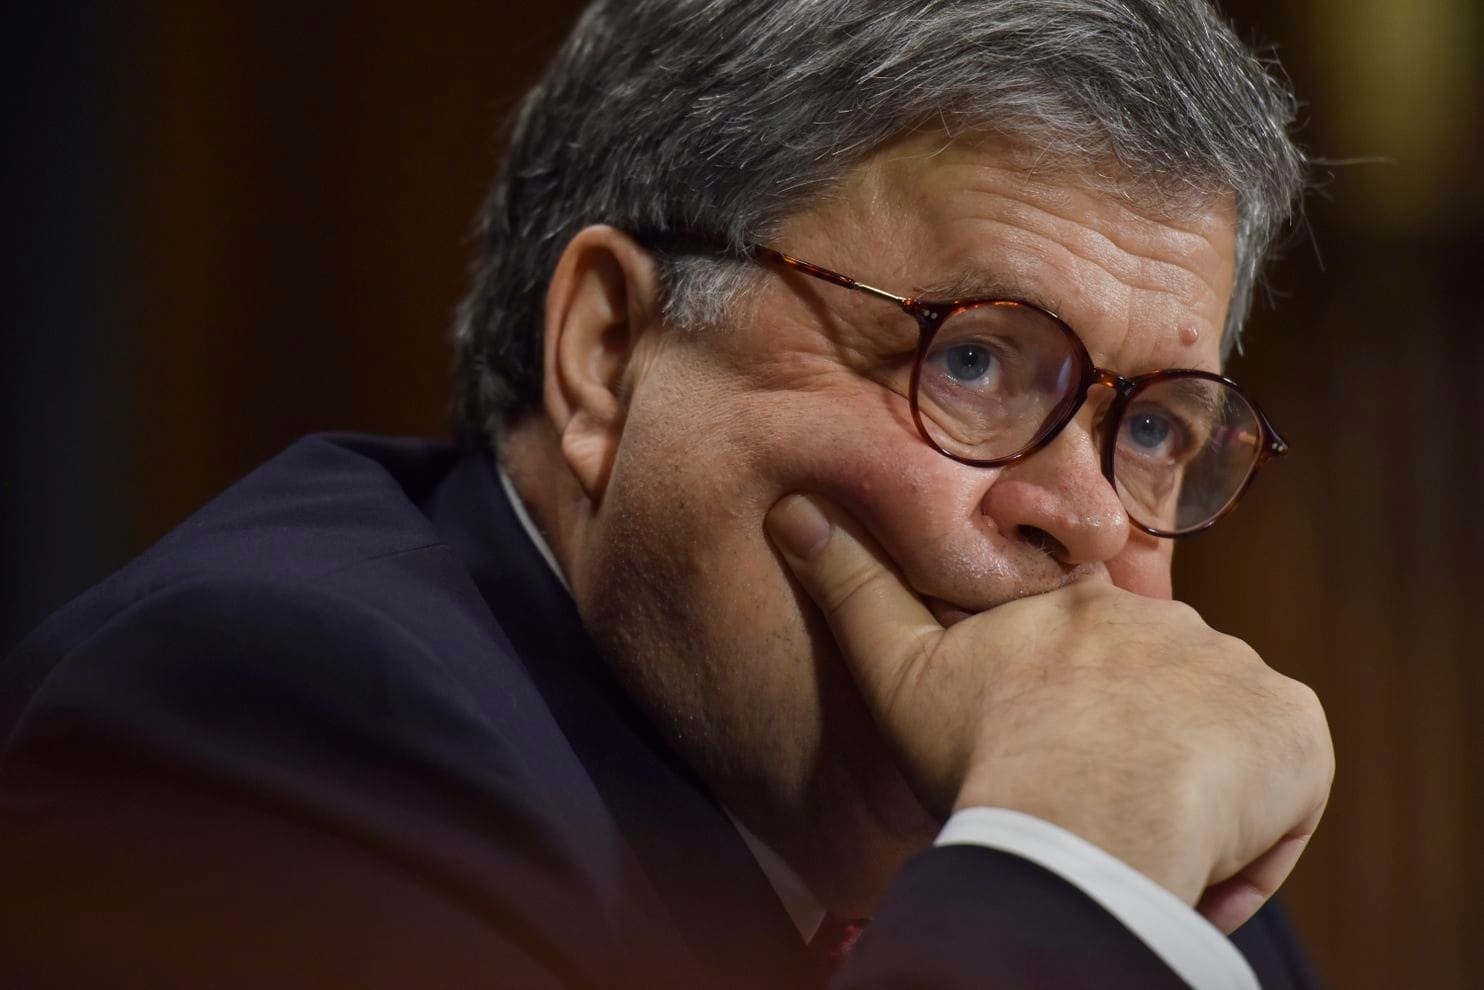 Will US House Judiciary Committee approve contempt resolution against Barr?